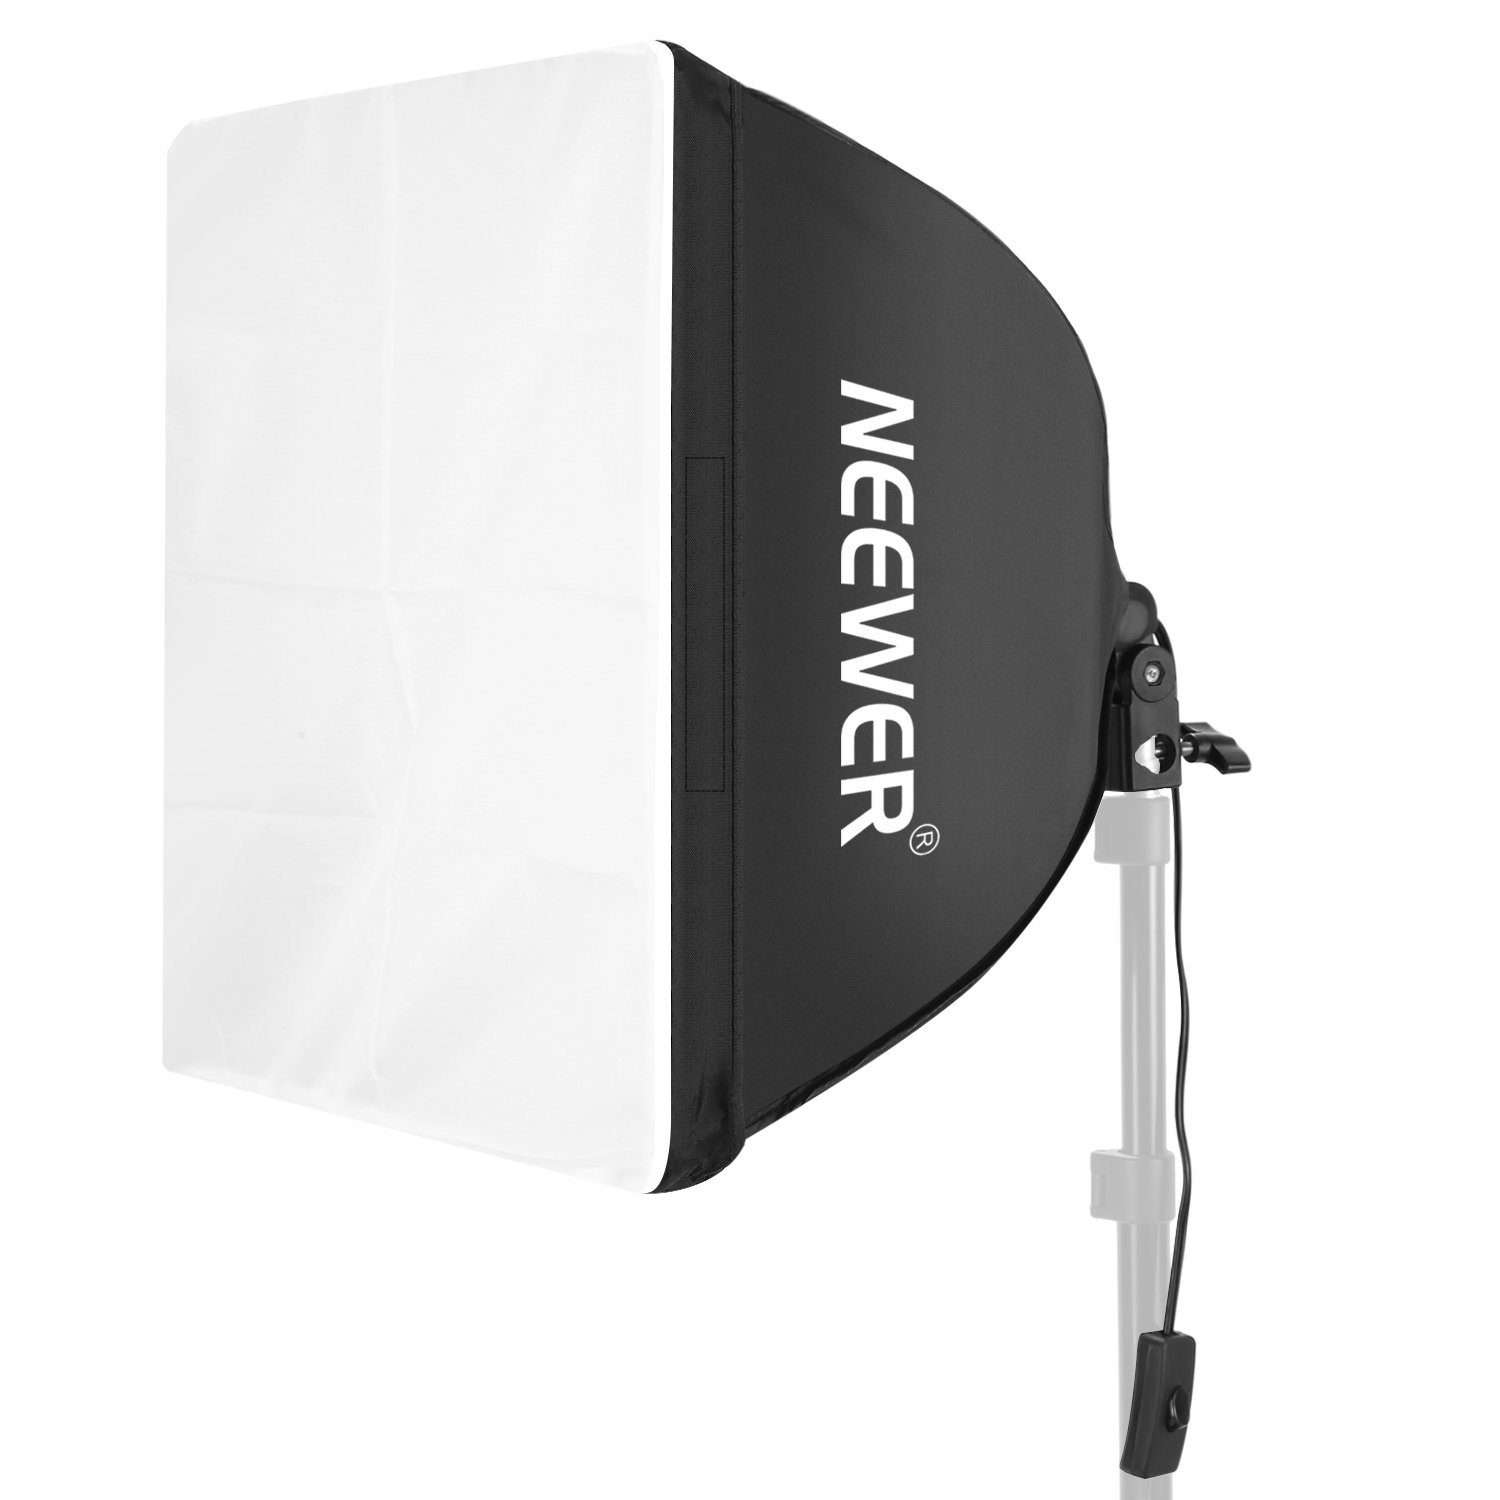 Neewer 16''x16''/40cmx40cm Photography Photo Video Studio Wired Softbox Flash Light Lighting Diffuser with E27 Socket for Fluorescent Bulb Lamp